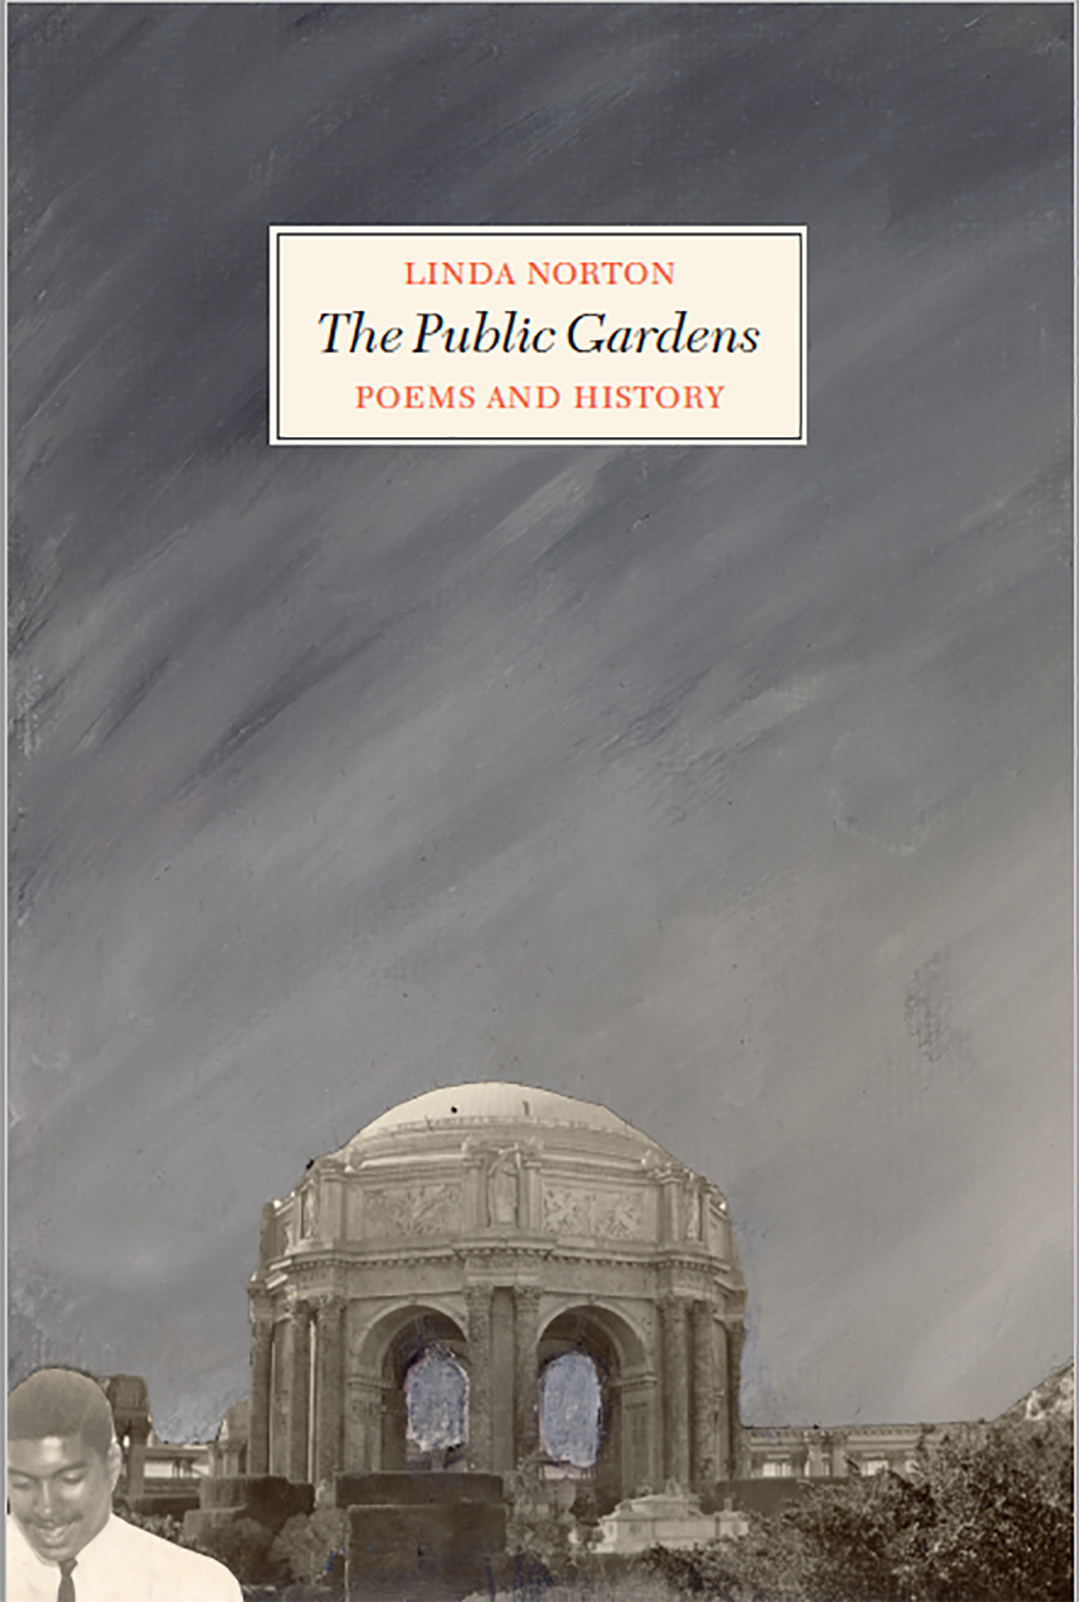 The Public Gardens: Poems and History, Linda Norton